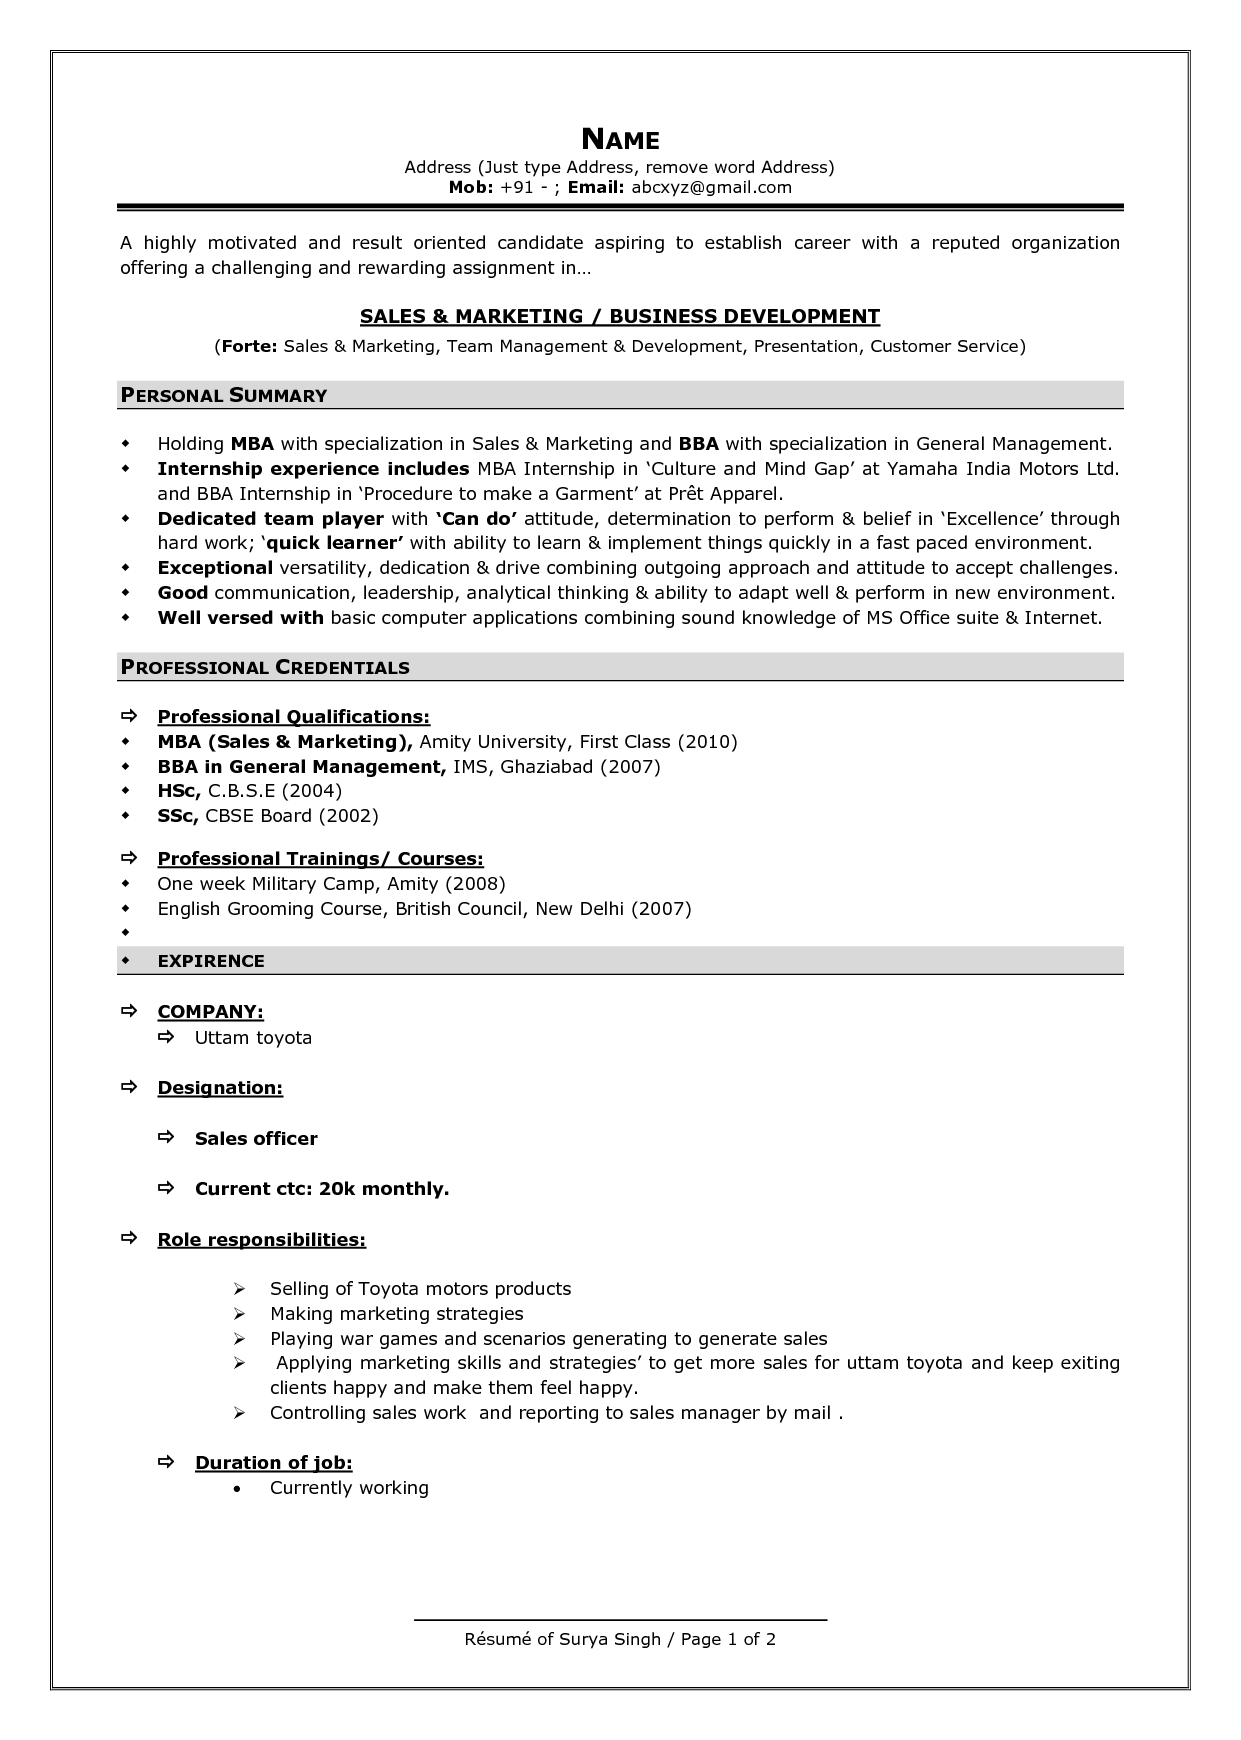 resume samples for experienced marketing professionals resume